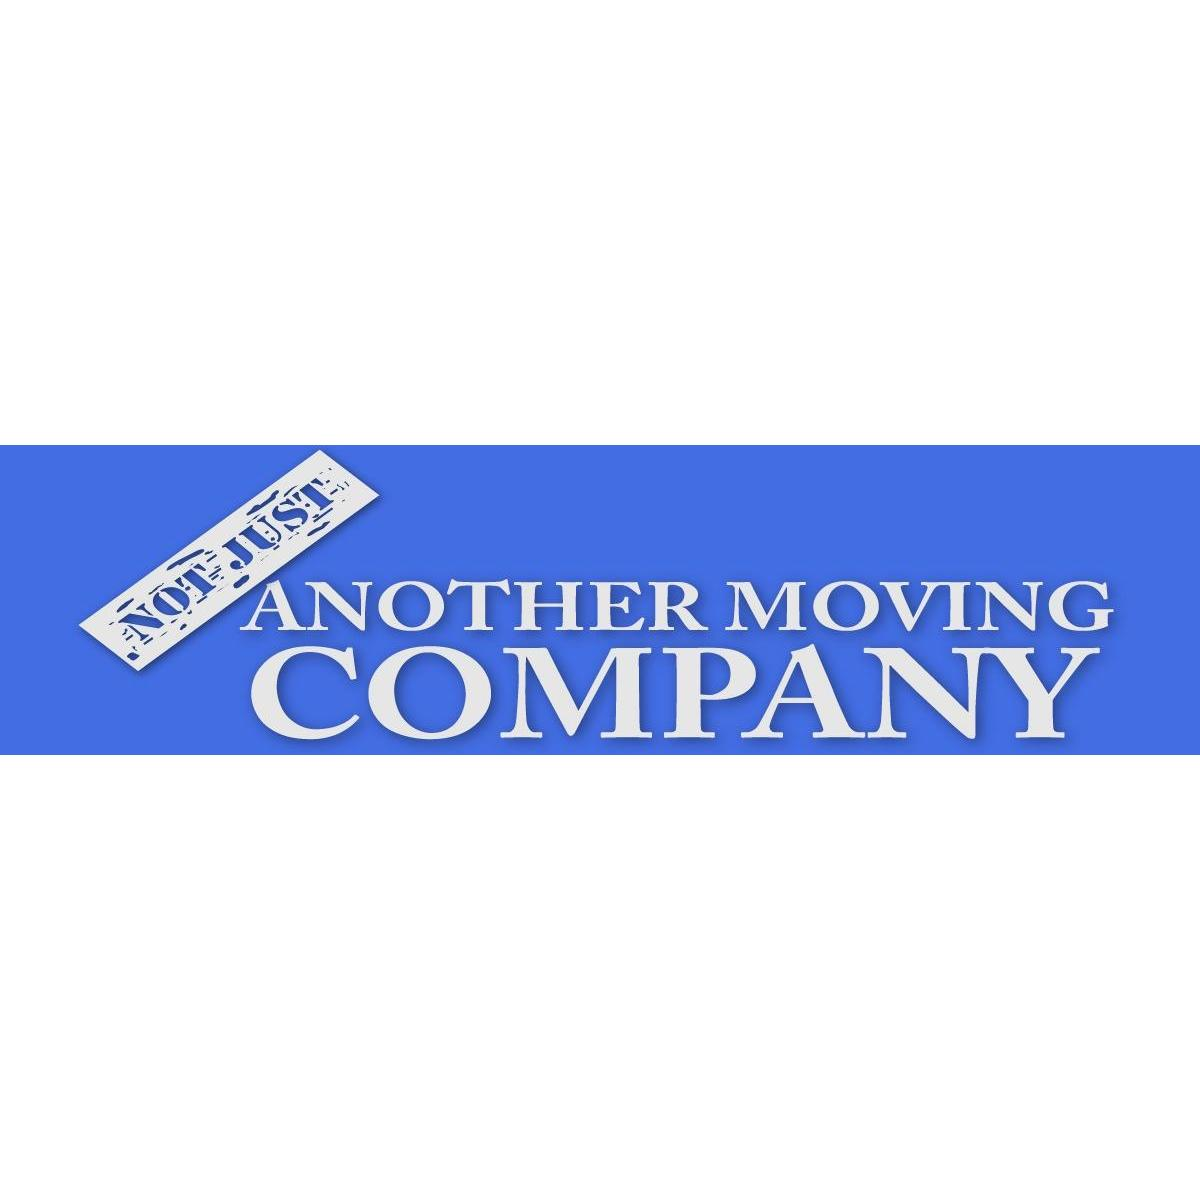 Not Just Another Moving Company